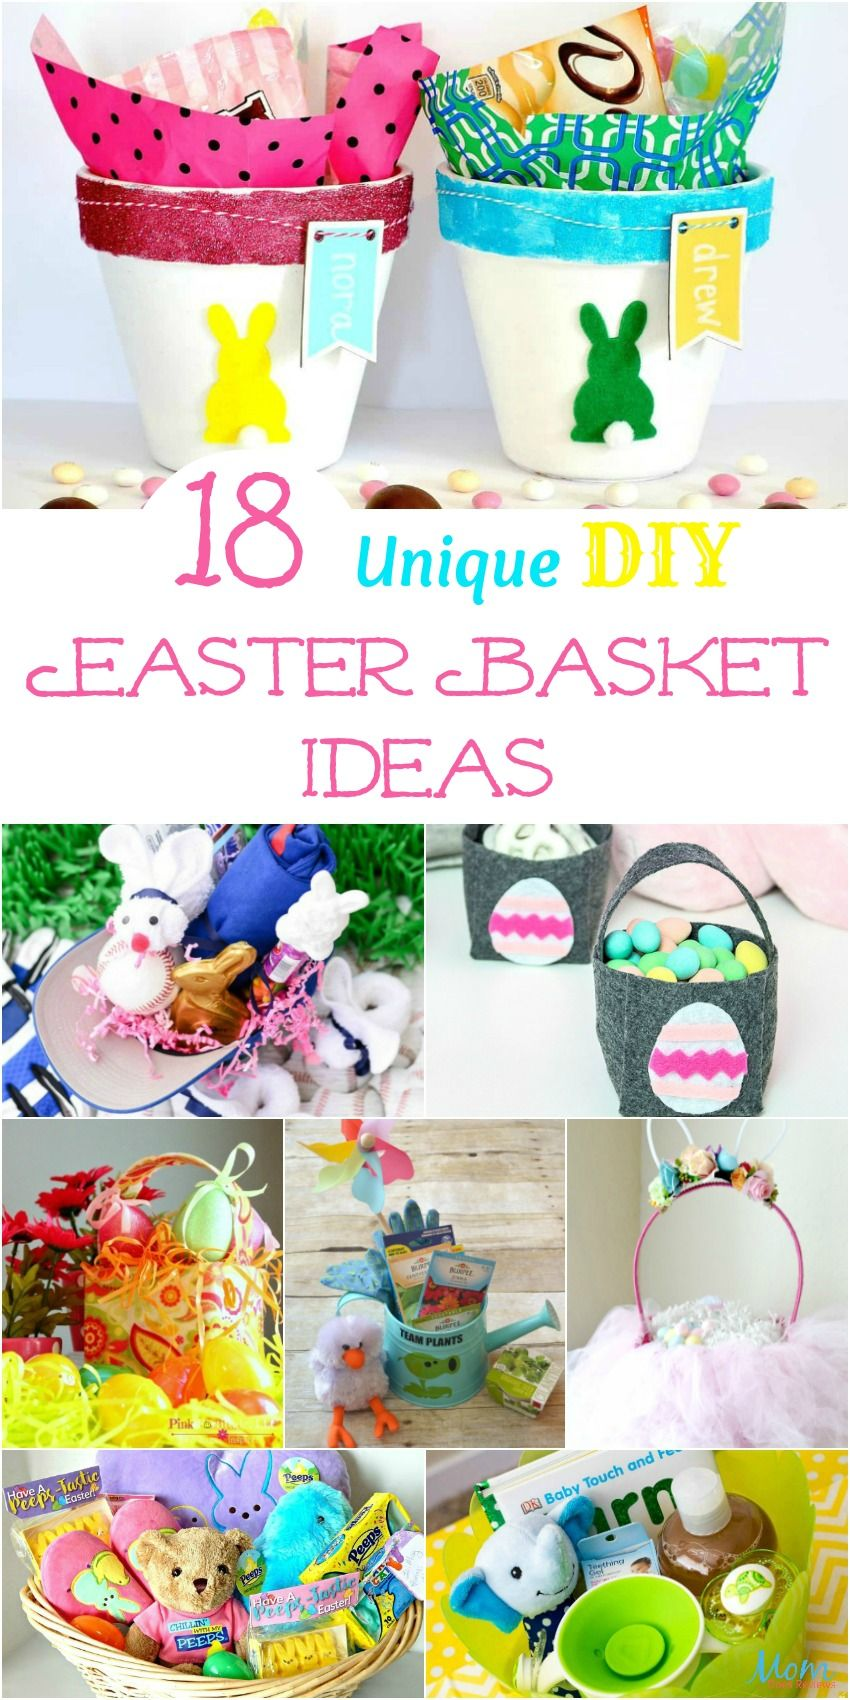 18 Cute Diy Girly Home Decor Ideas: 18 Unique DIY Easter Basket Ideas Too Cute Not To Try